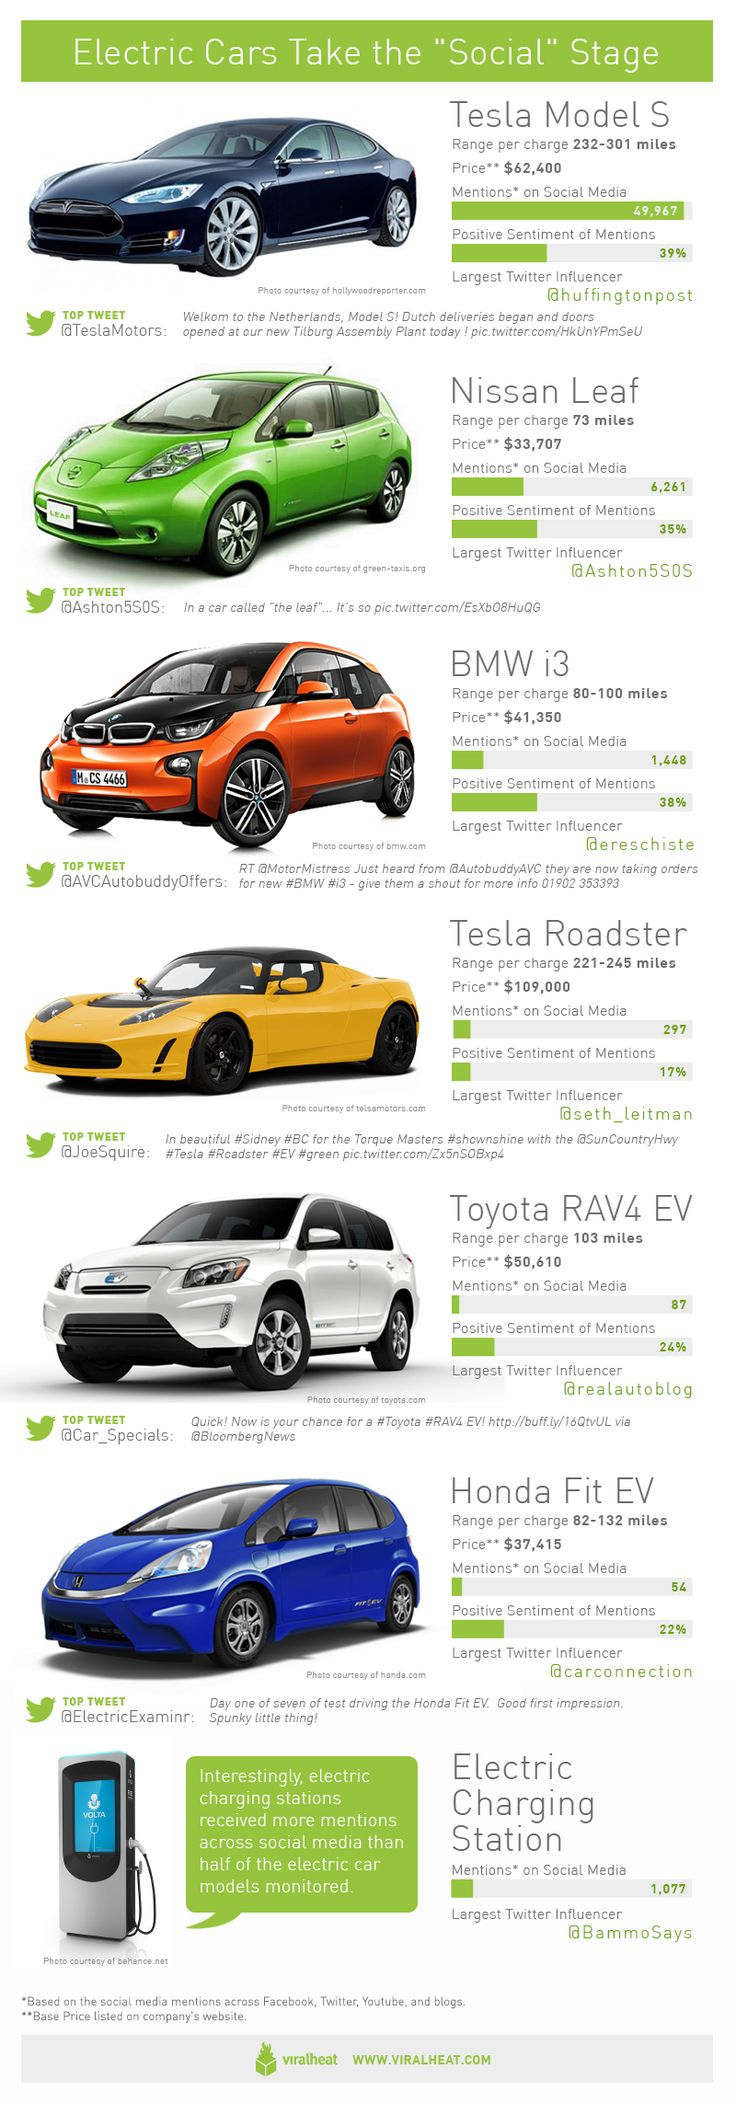 Future #CoveCars at Hidden Cove on the Hudson? | Electric cars generate social buzz.